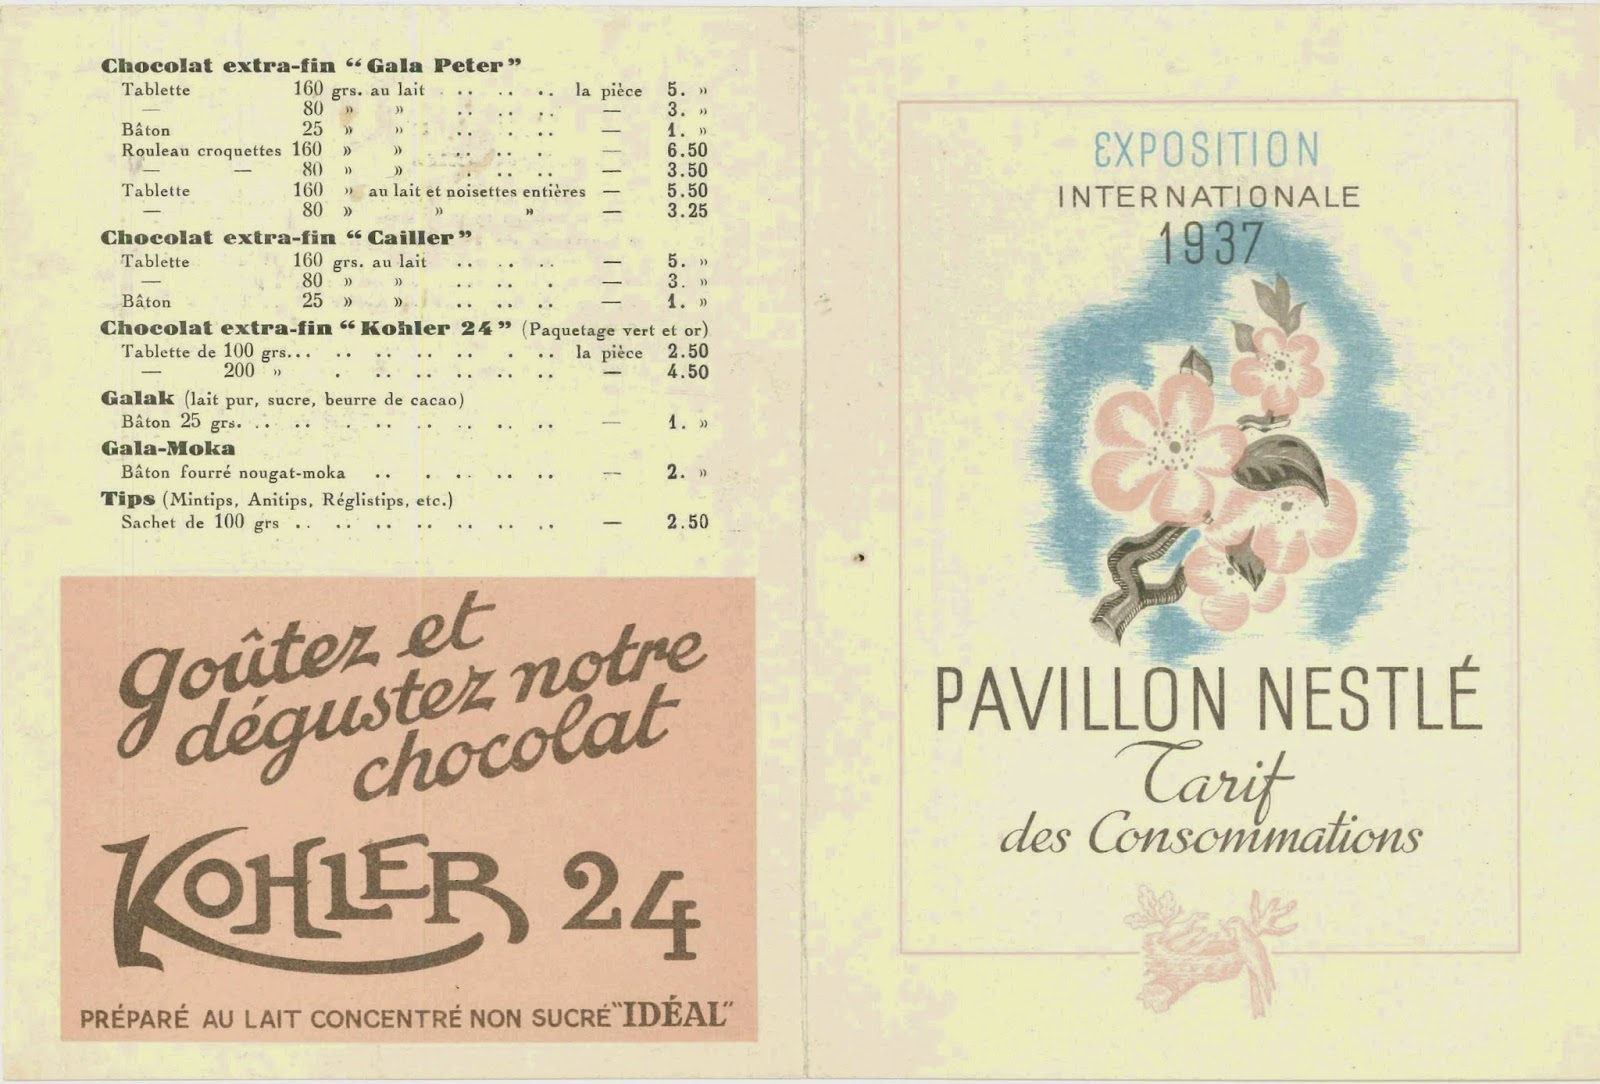 Th pamphlet for the Pavillon Nestle's 1937 exposition..